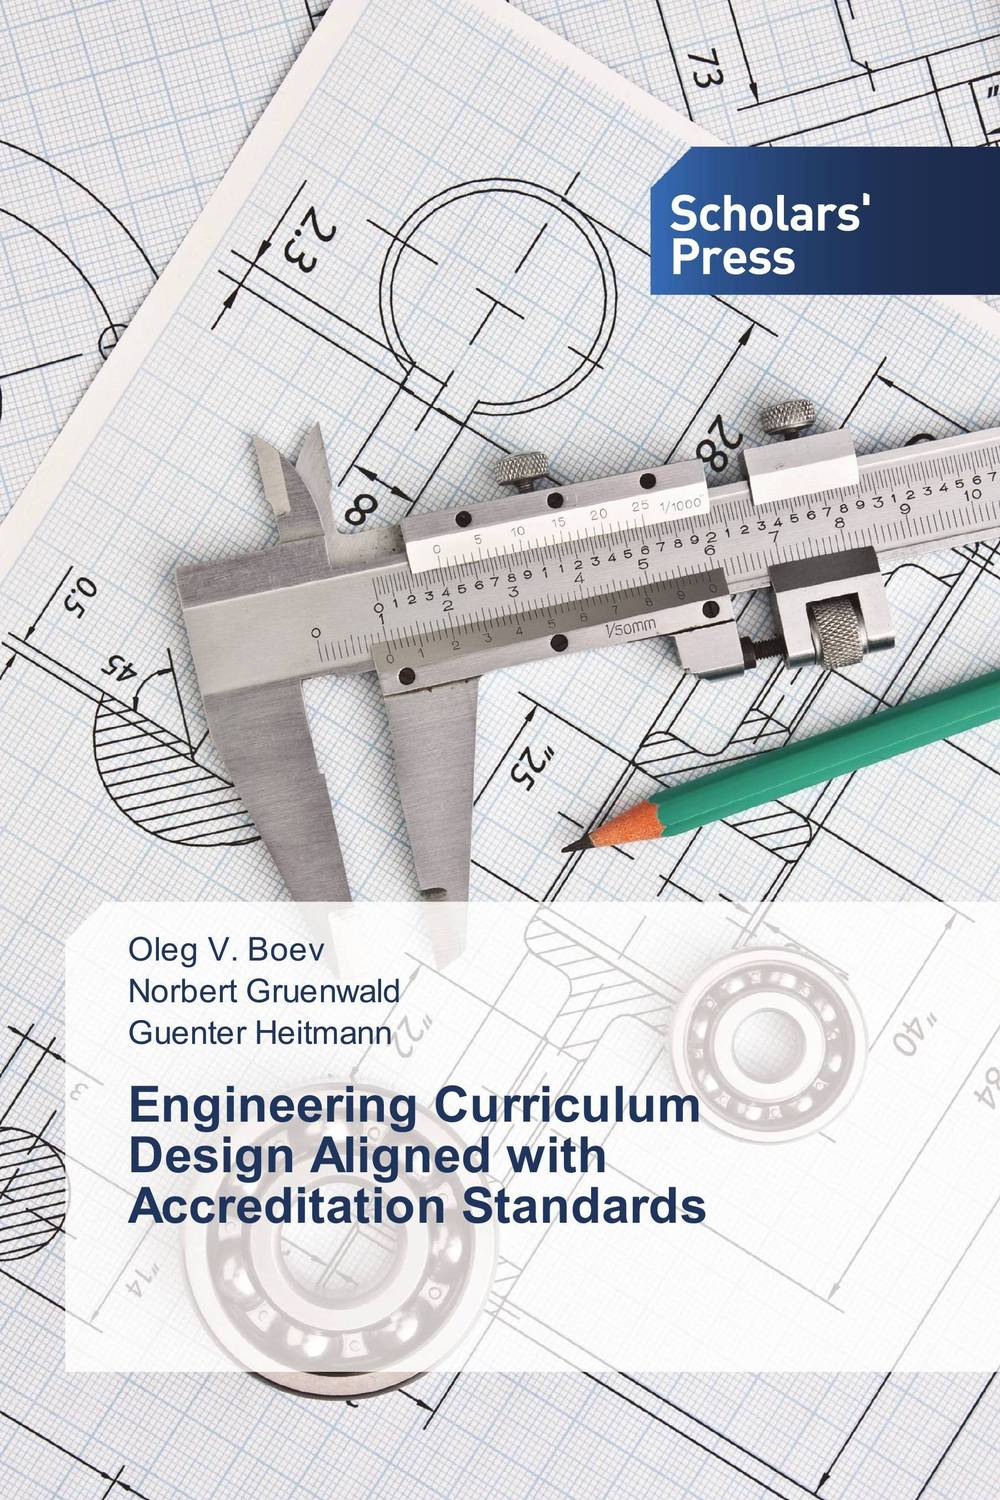 Engineering Curriculum Design Aligned with Accreditation Standards achieving the goals of art learning through sandwich nce programme